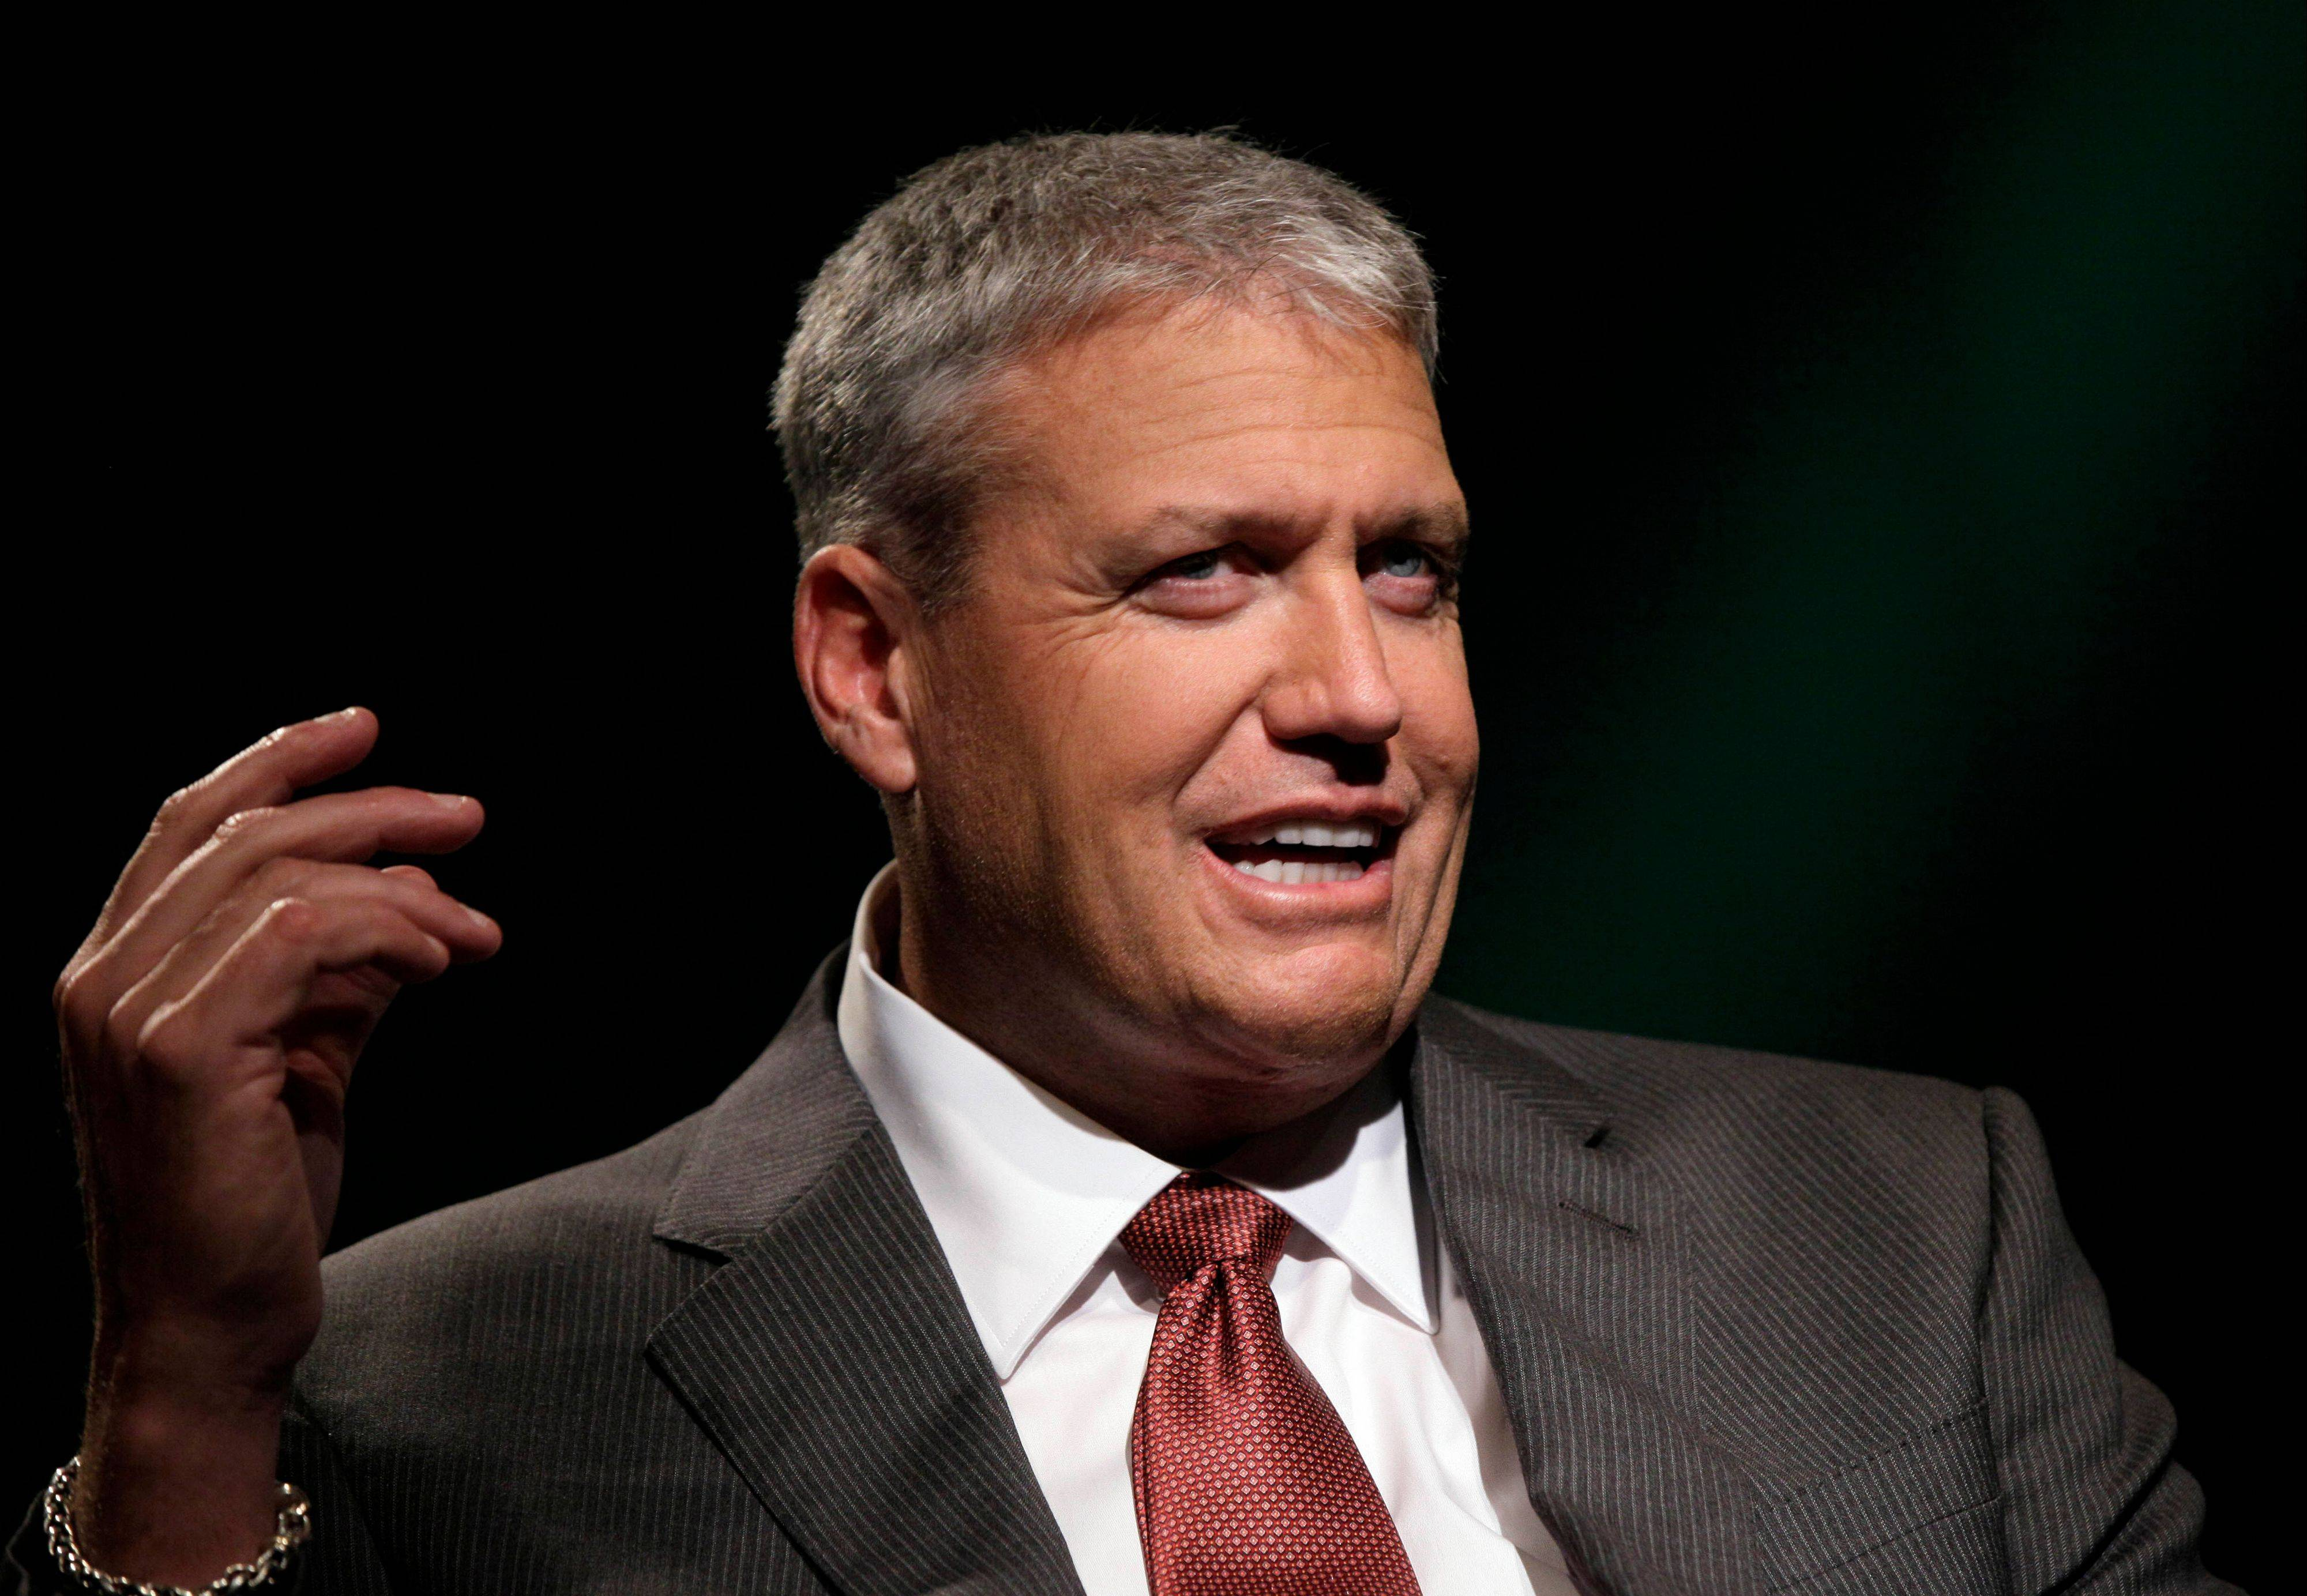 New York Jets football coach Rex Ryan, a Stevenson High School grad, tells the Associated Press about his 105-pound weight loss and the lap-band surgery that helped him achieve it.